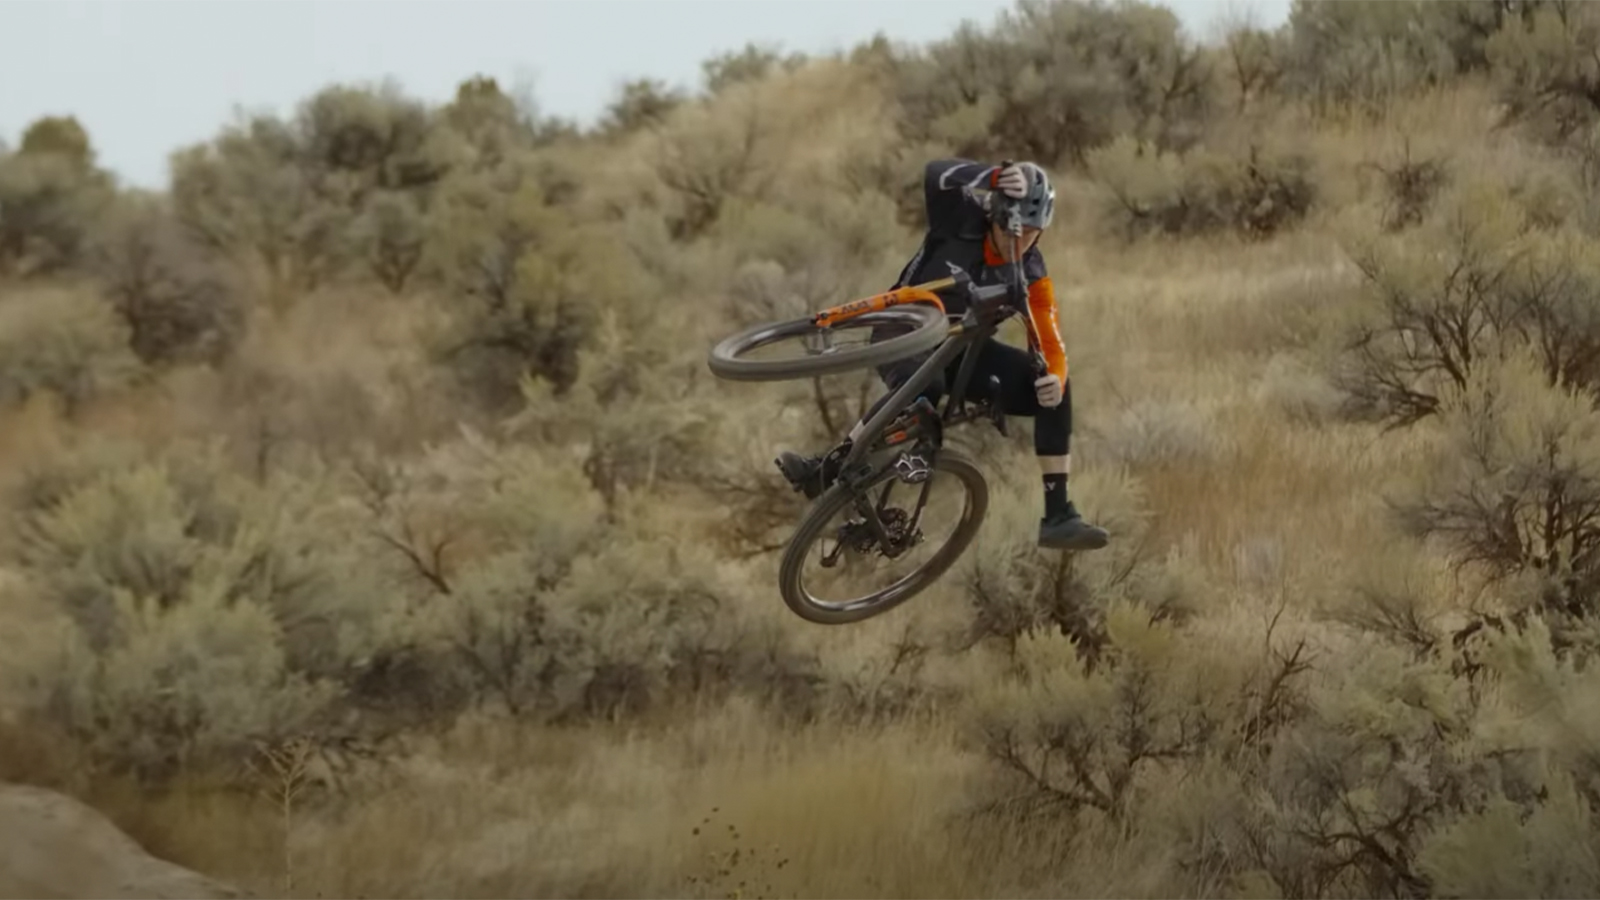 From BMX Racer to Mountain Biker and Pumptrack World Champion - Tommy Zula's Bike Journey